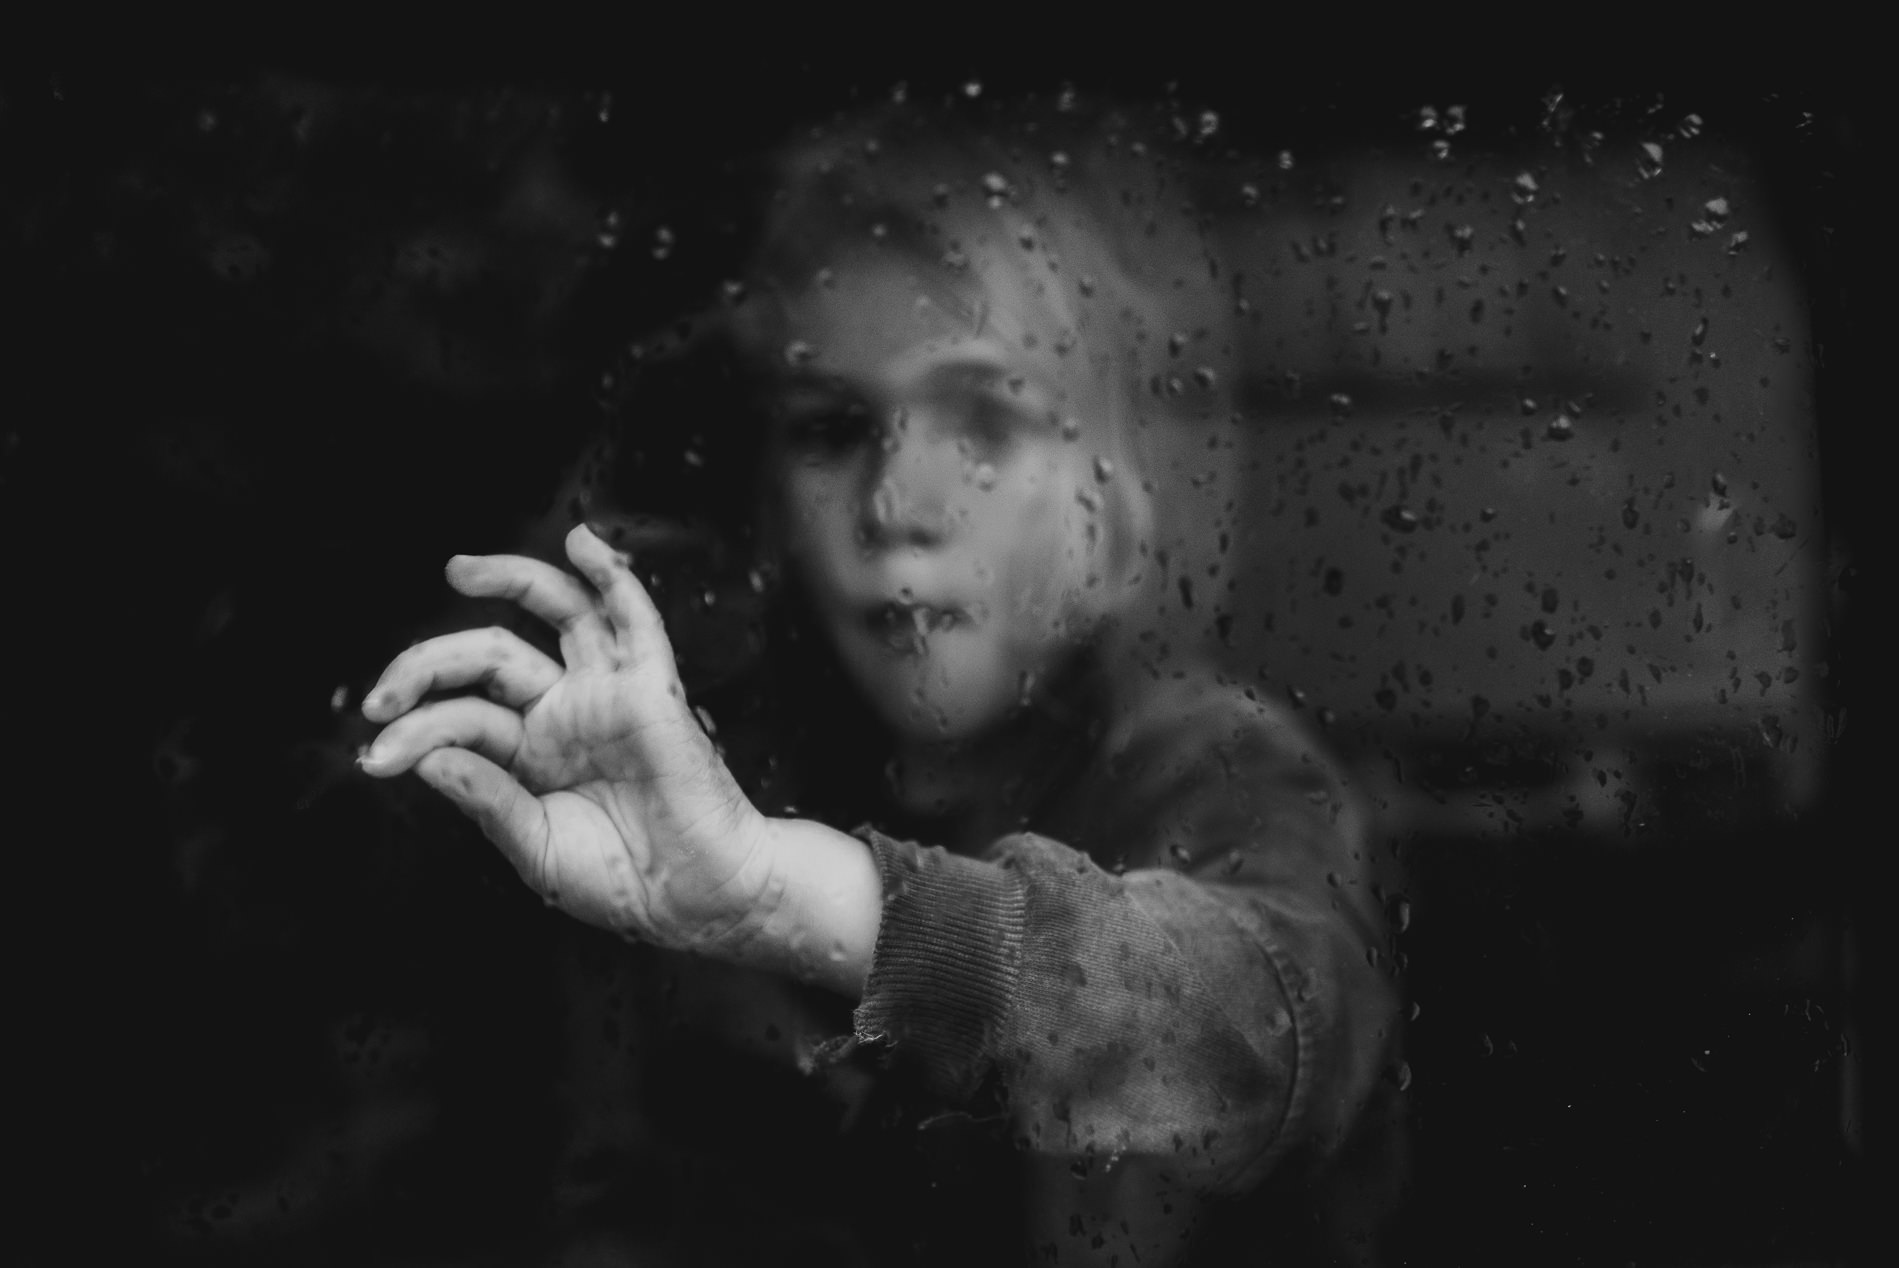 Child at window winter lifestyle blog post